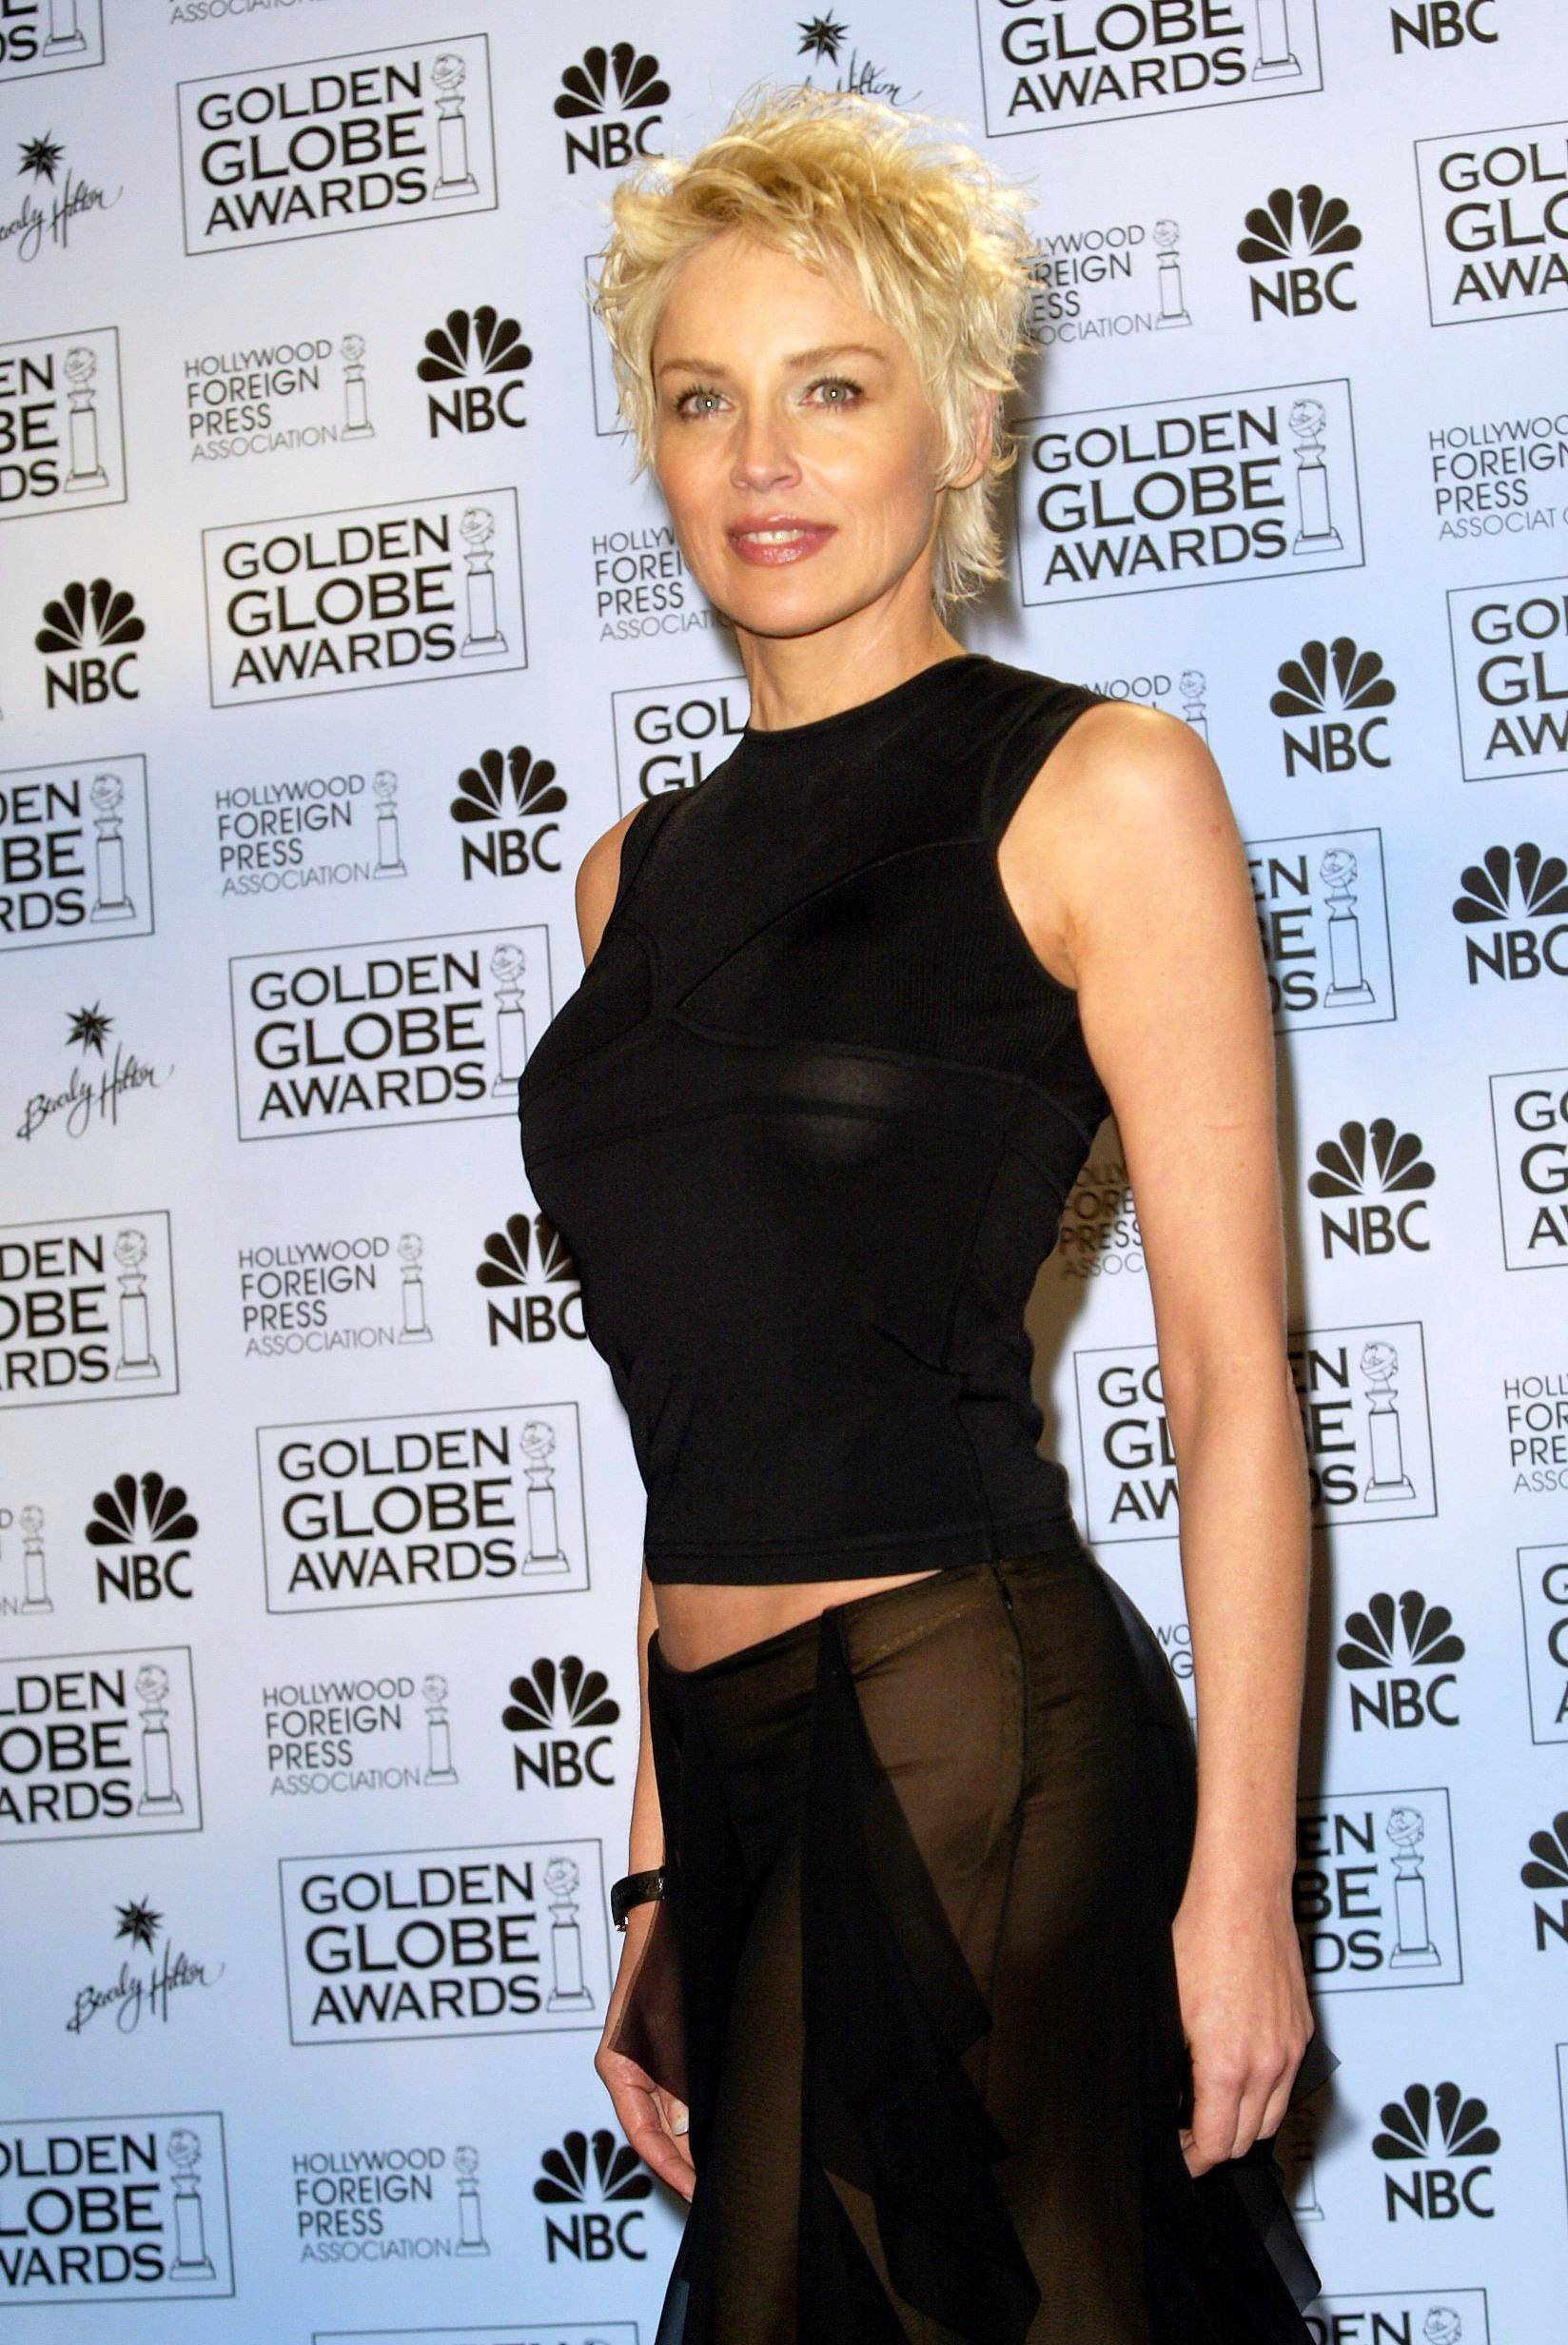 Golden Globes - Sharon Stone